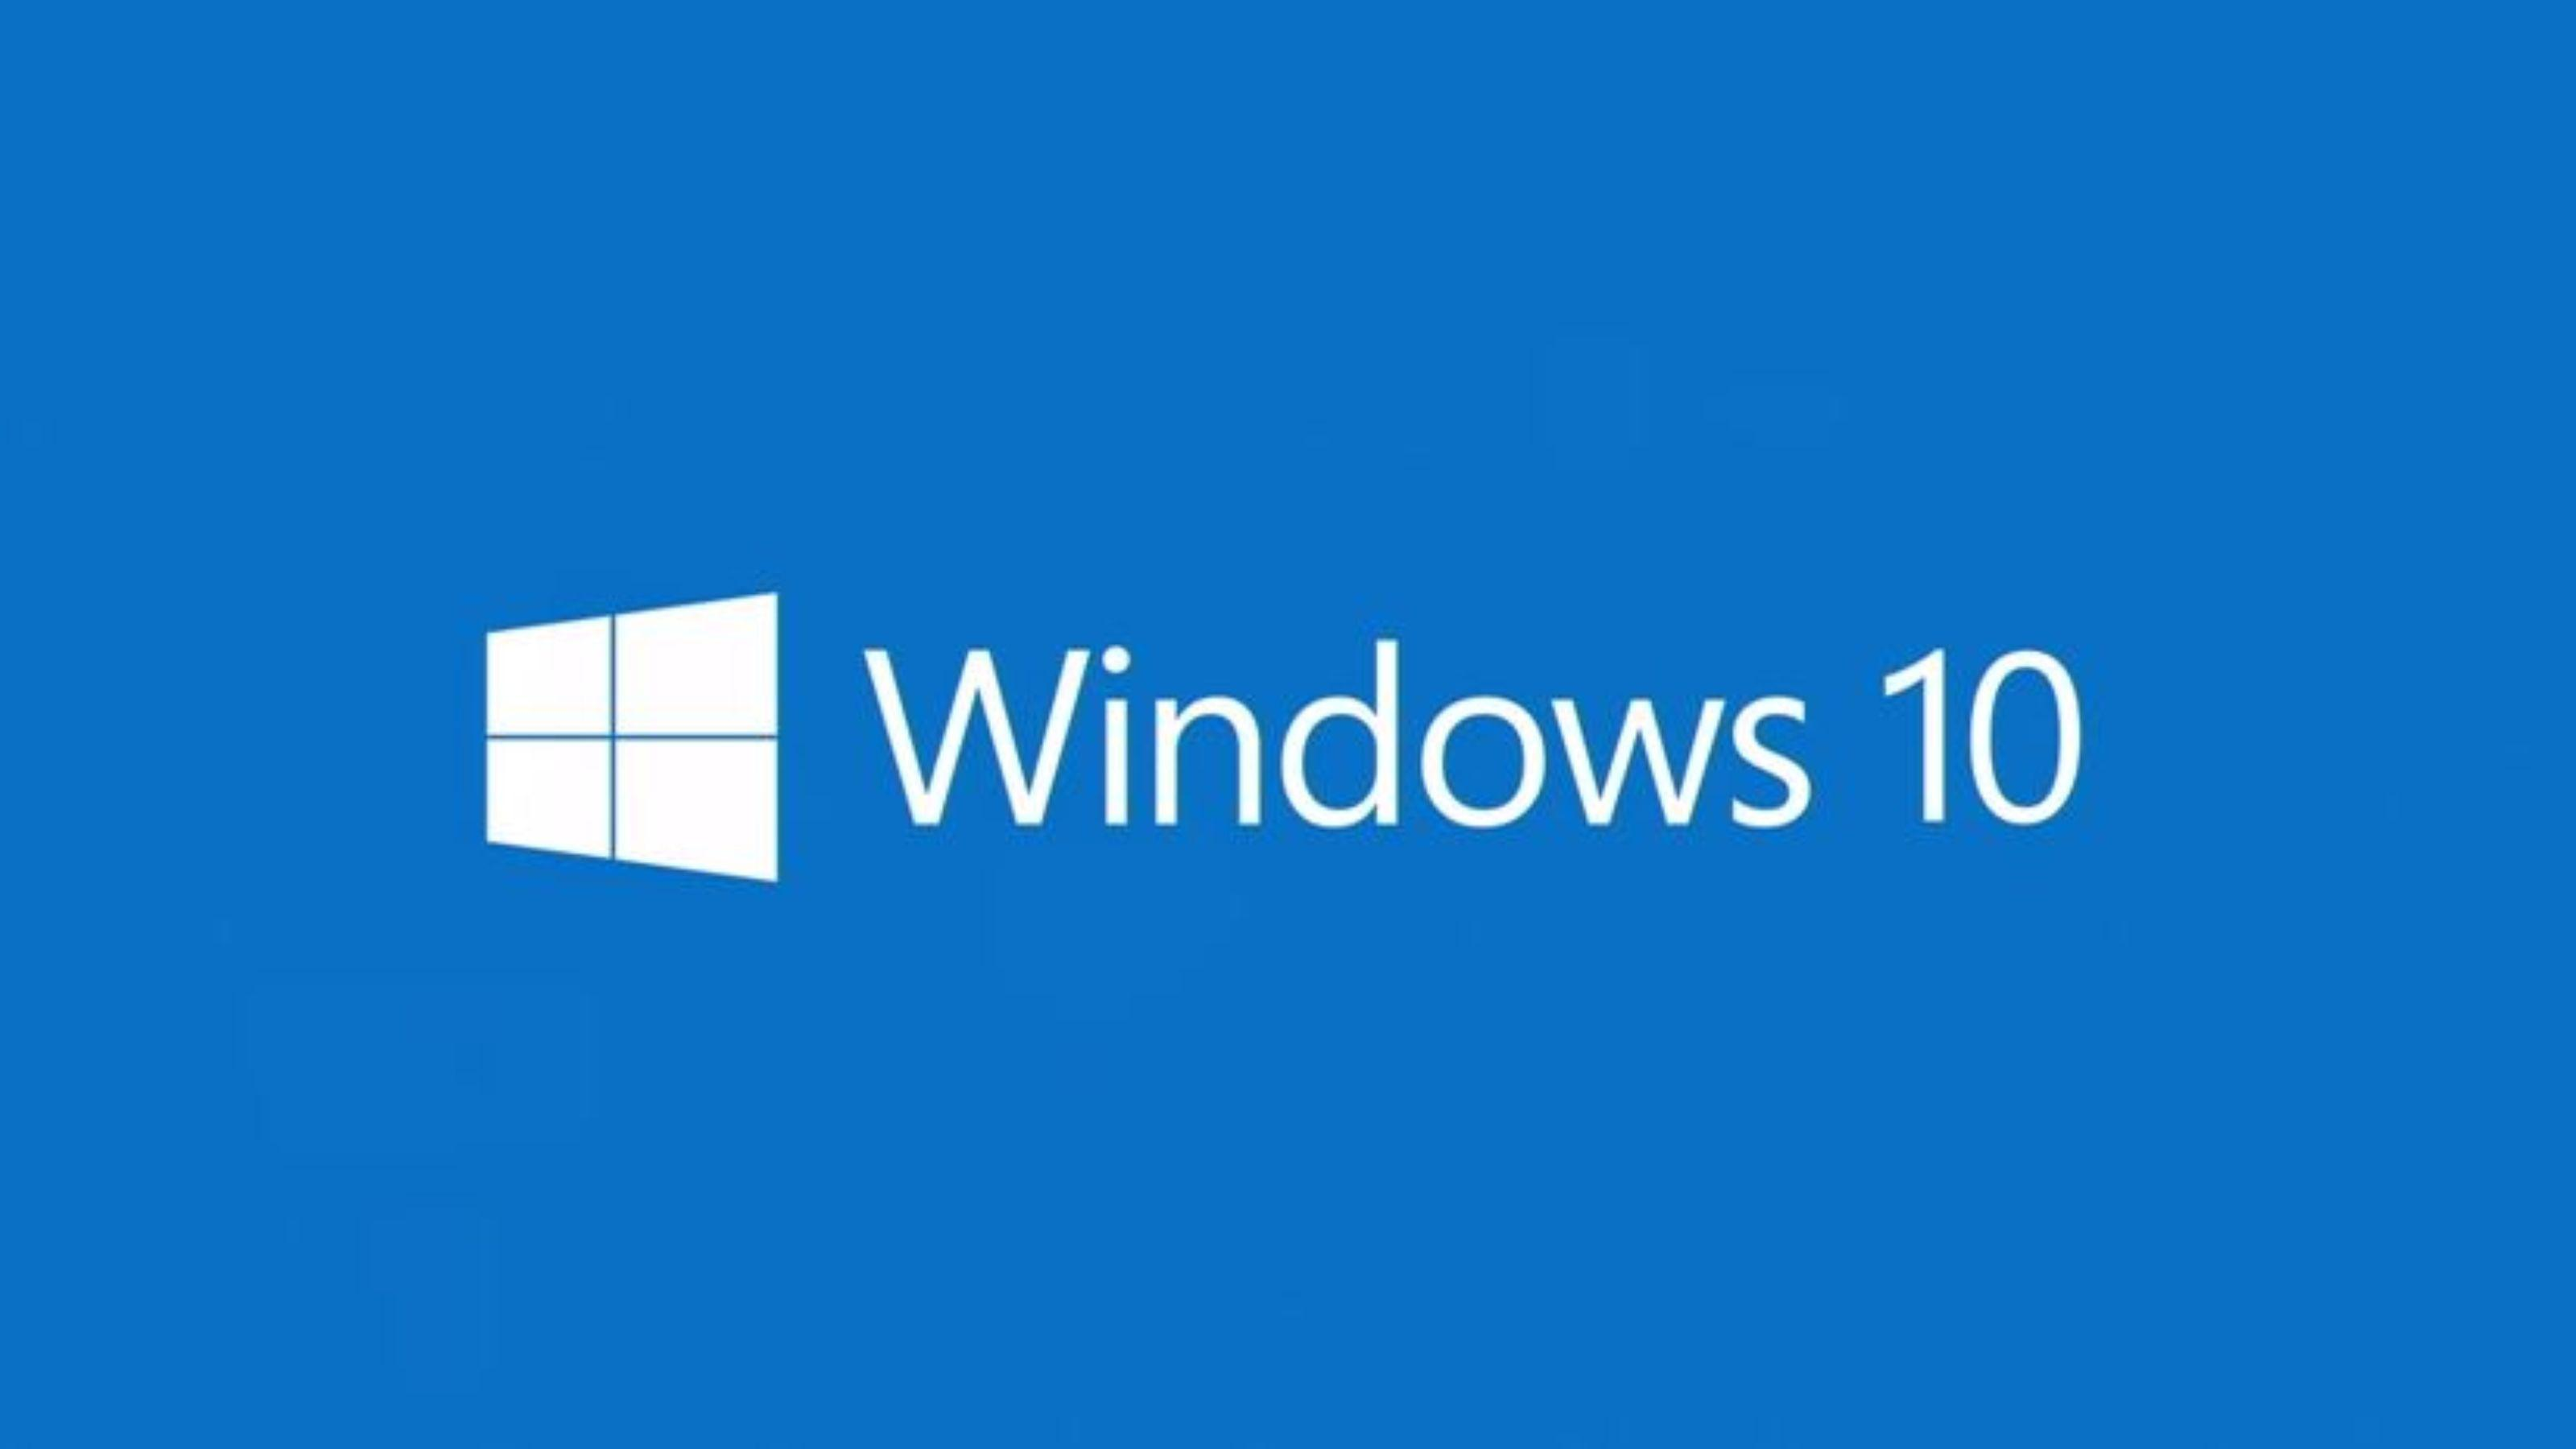 It Goes Without Saying Windows 10 Isnt For Everyone Many Are Happy And Satisfied With 7 Even 81 But Microsoft